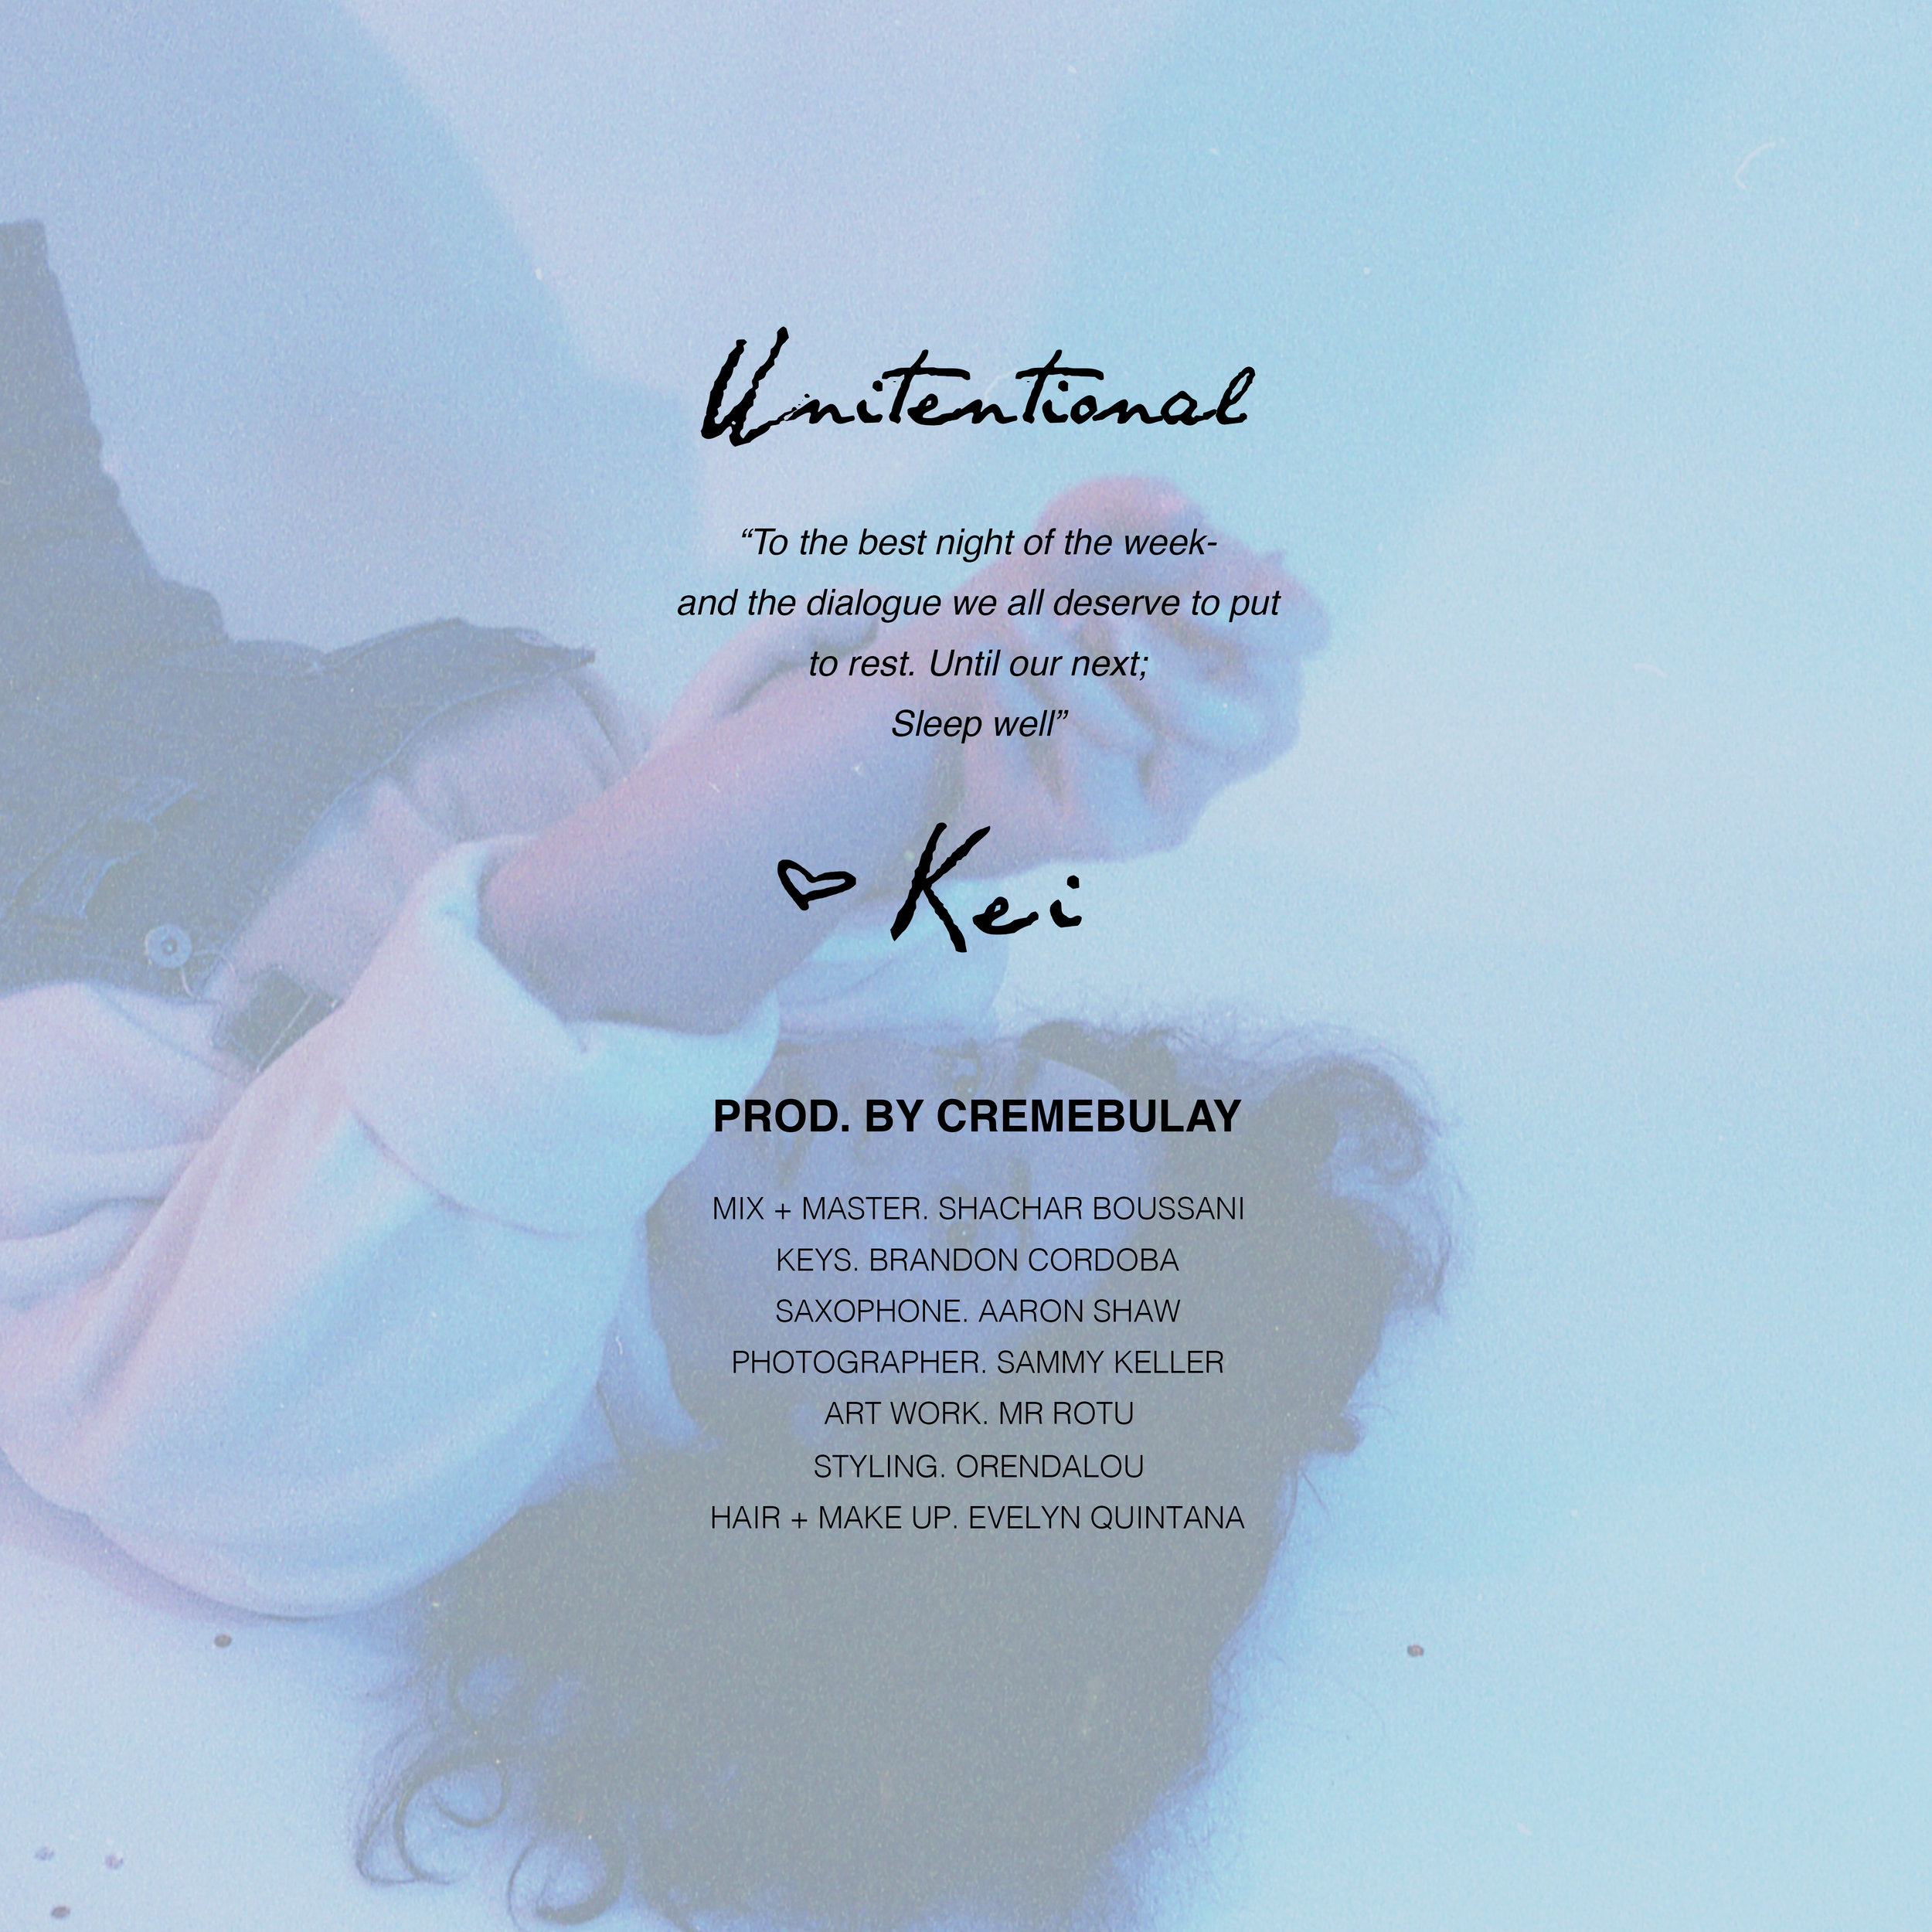 """UNINTENTIONAL- an introductory single to a series of """"one-off"""" projects created and produced by Katrina """"Cremebulay"""" and """"Kei"""". This first track finds relation to nuanced moments of memories, men, family, and issues of self. These, essentially, the caution and ambiguity of life and situations that we so often find ourselves in, are some of the many questions that are asked in the single, even if there are no answers. Through the influence and shape of free jazz, UNINTENTIONAL provides a dialogue of sentiment between lyricism and live instrumentation. At length of 4 minutes and 26 seconds, Kei aims to stimulate thought and digestion of the results of intent (or lack thereof) as well as moving forward into new situations and environments controlled primarily by intentions; whether those belong to us or those around us. This busy lullaby presents a small grip on to what little we can control in life, such as making sure our lips always shine."""